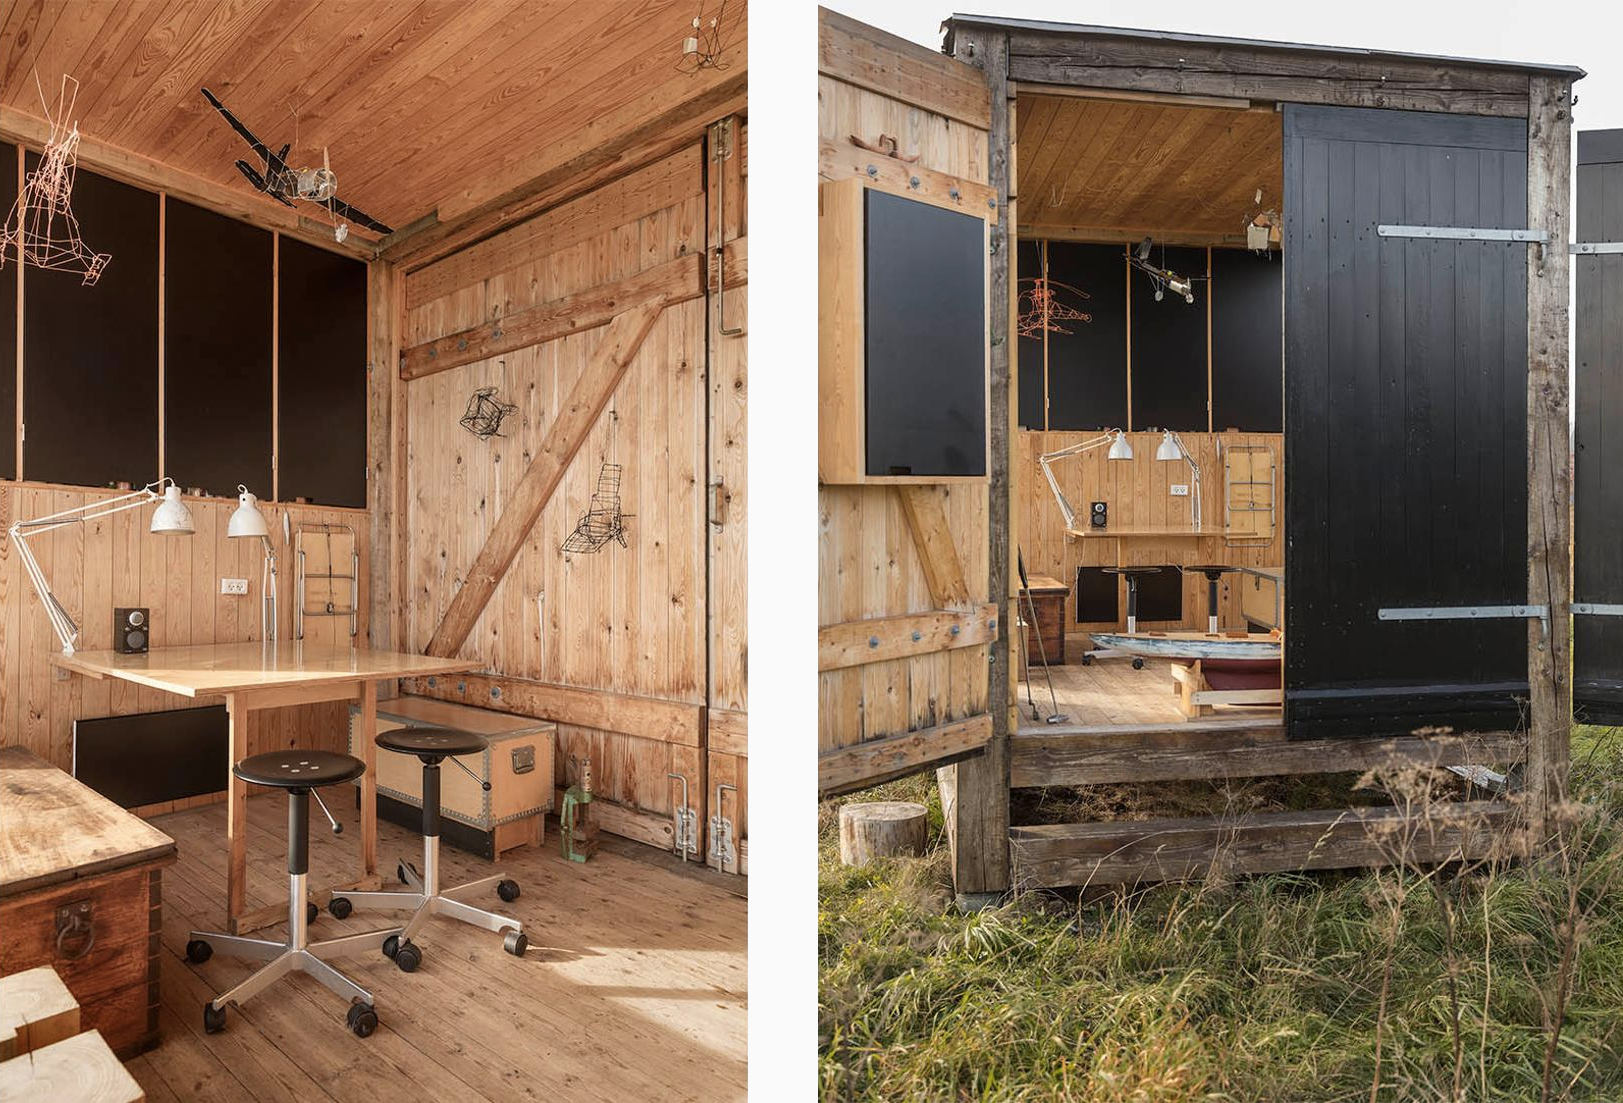 Rustic pavilion by designer Anders Hermansen hits the market